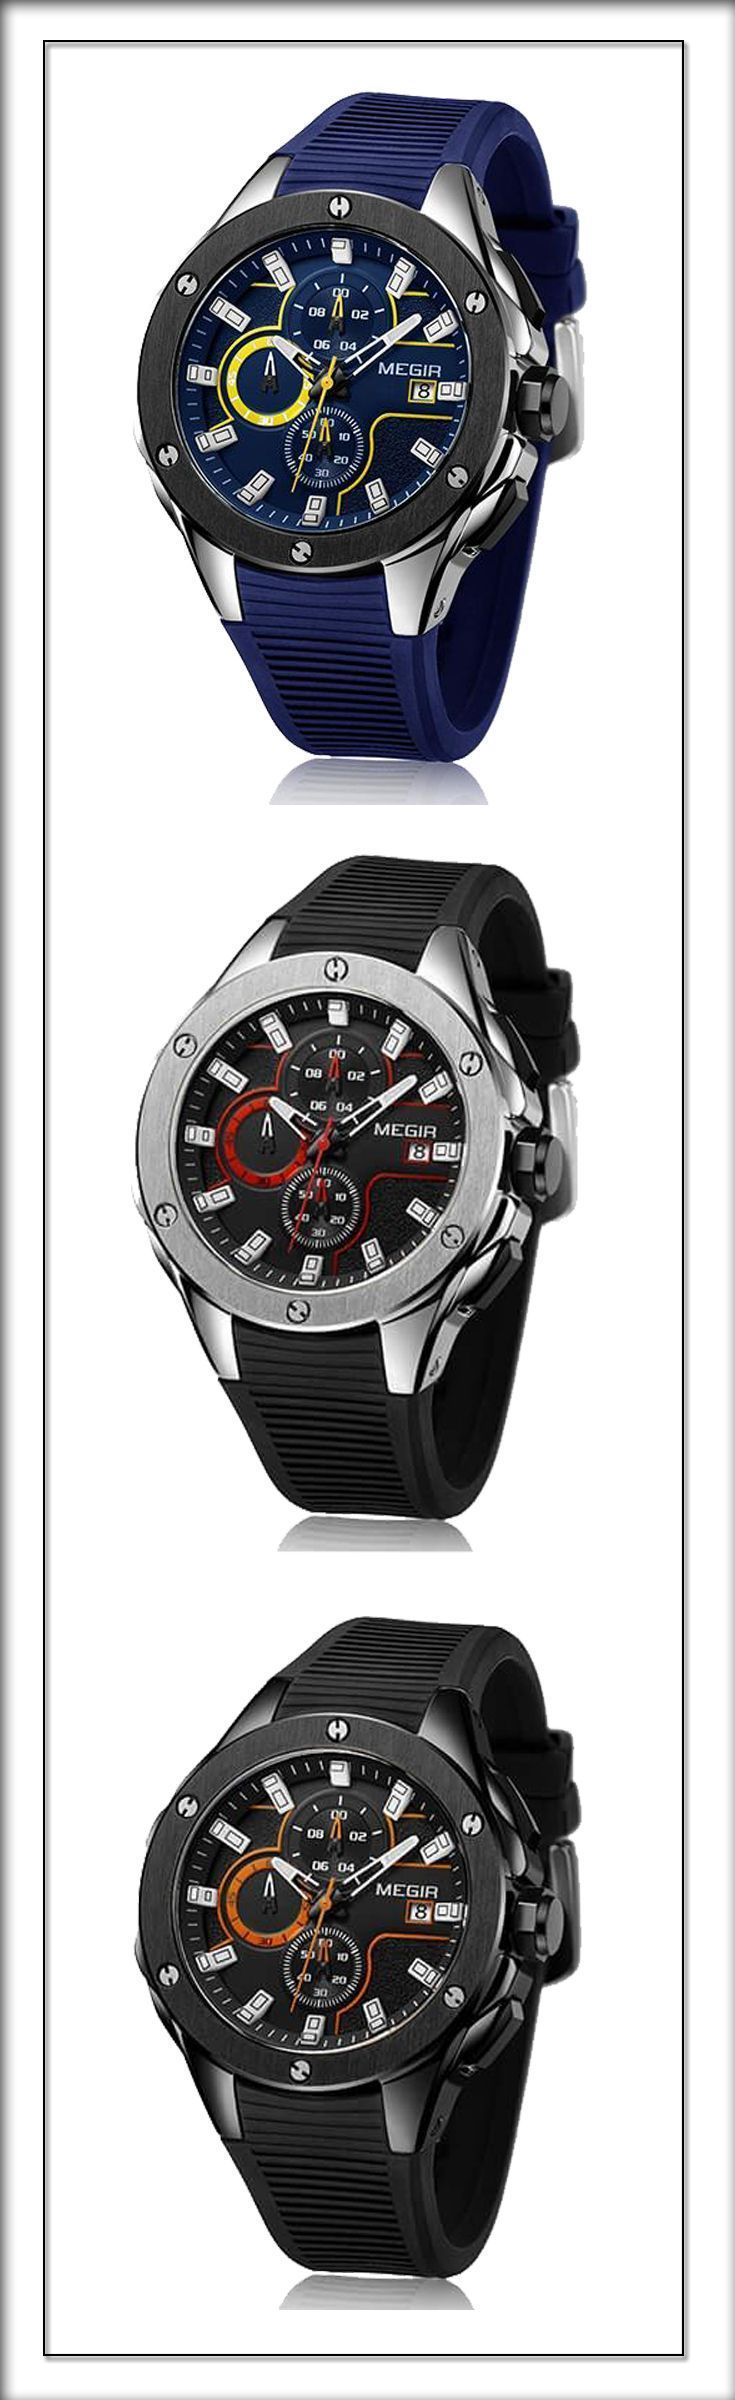 Men's Sport Luxury watches at it's finest - Take a look at the new generation of watches ------ 2018 megir silicone casual sport watch for men #sportwatches #menswatch #MensFashionWatches #Fashionwatchformen